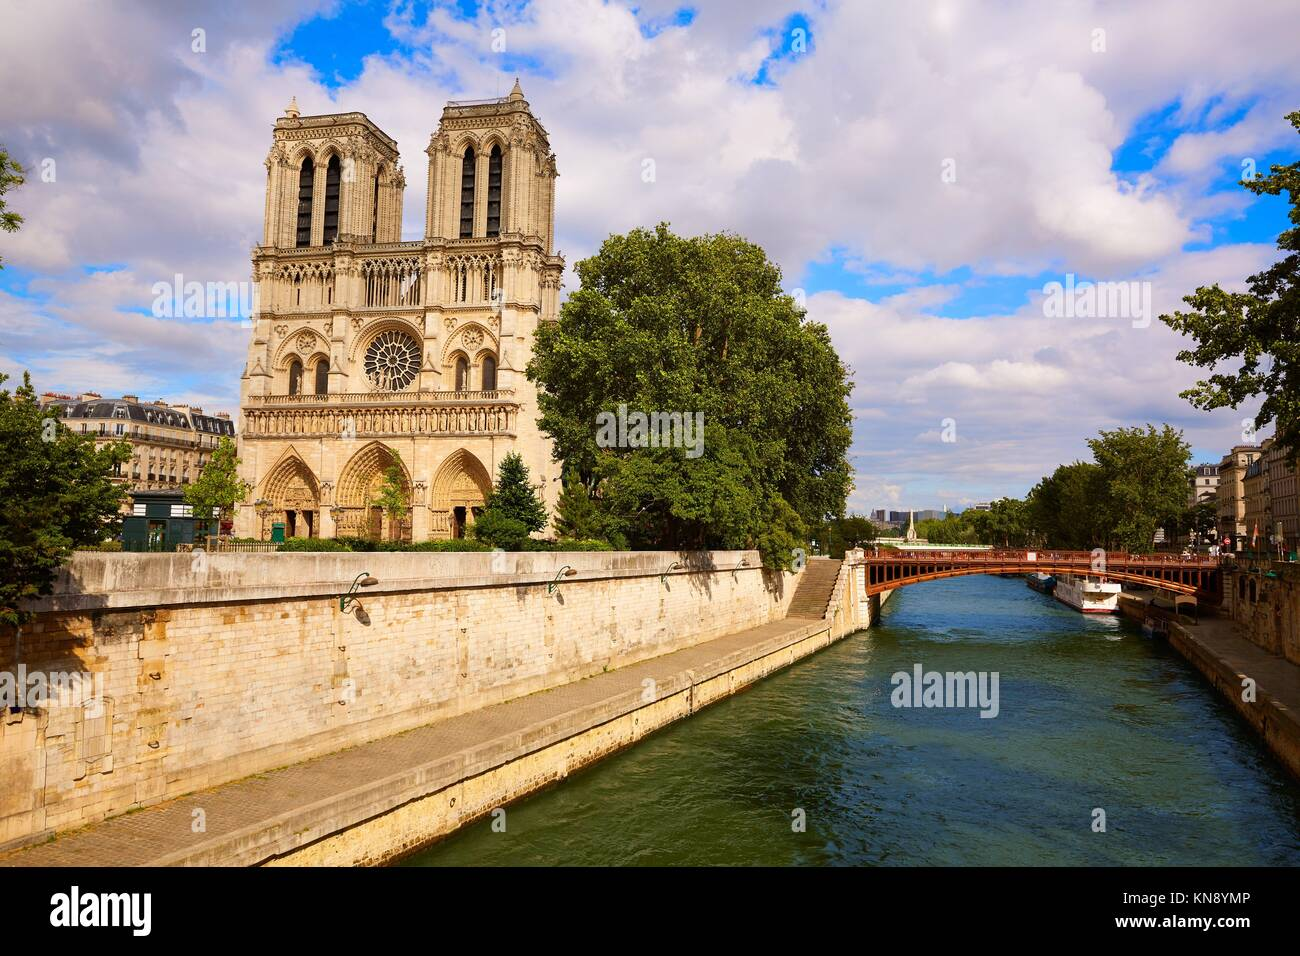 Notre Dame cathedral in Paris France French Gothic architecture. - Stock Image